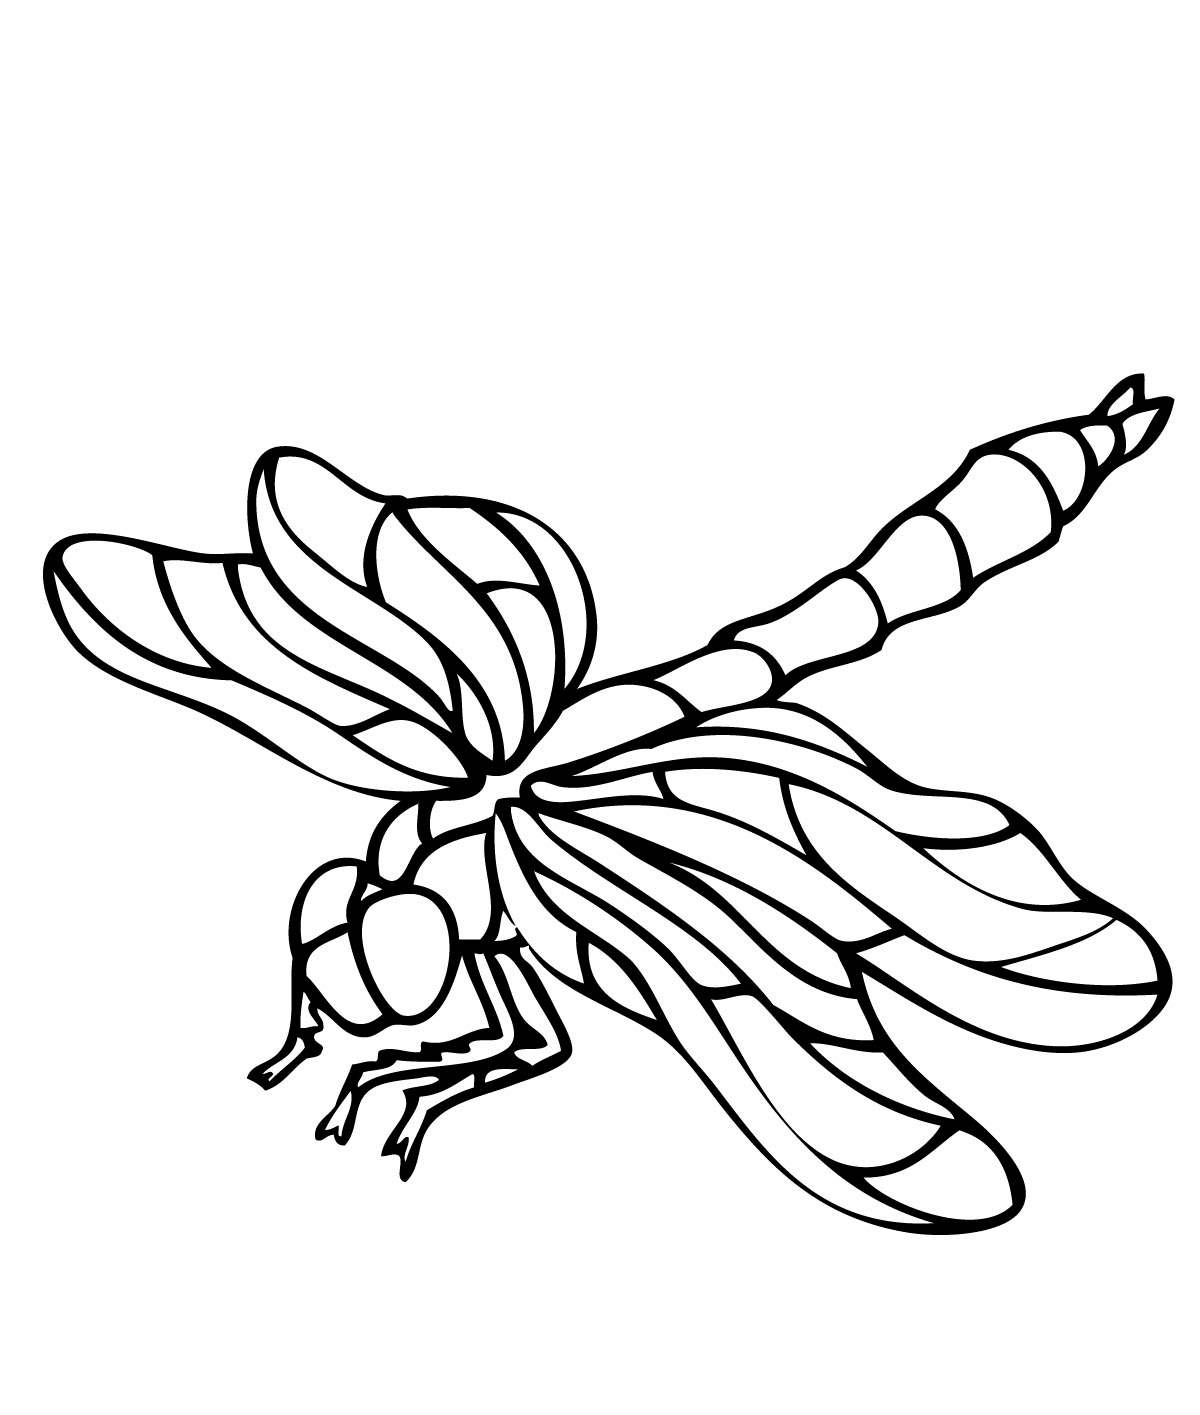 Dragonflies coloring pages download and print for free